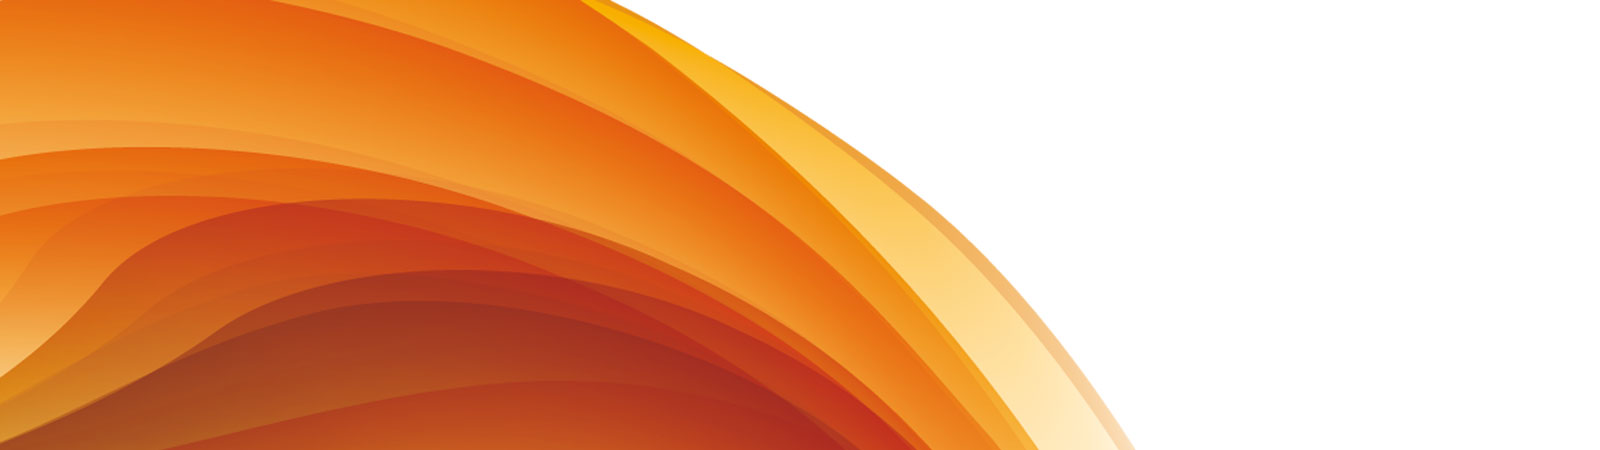 background_orange